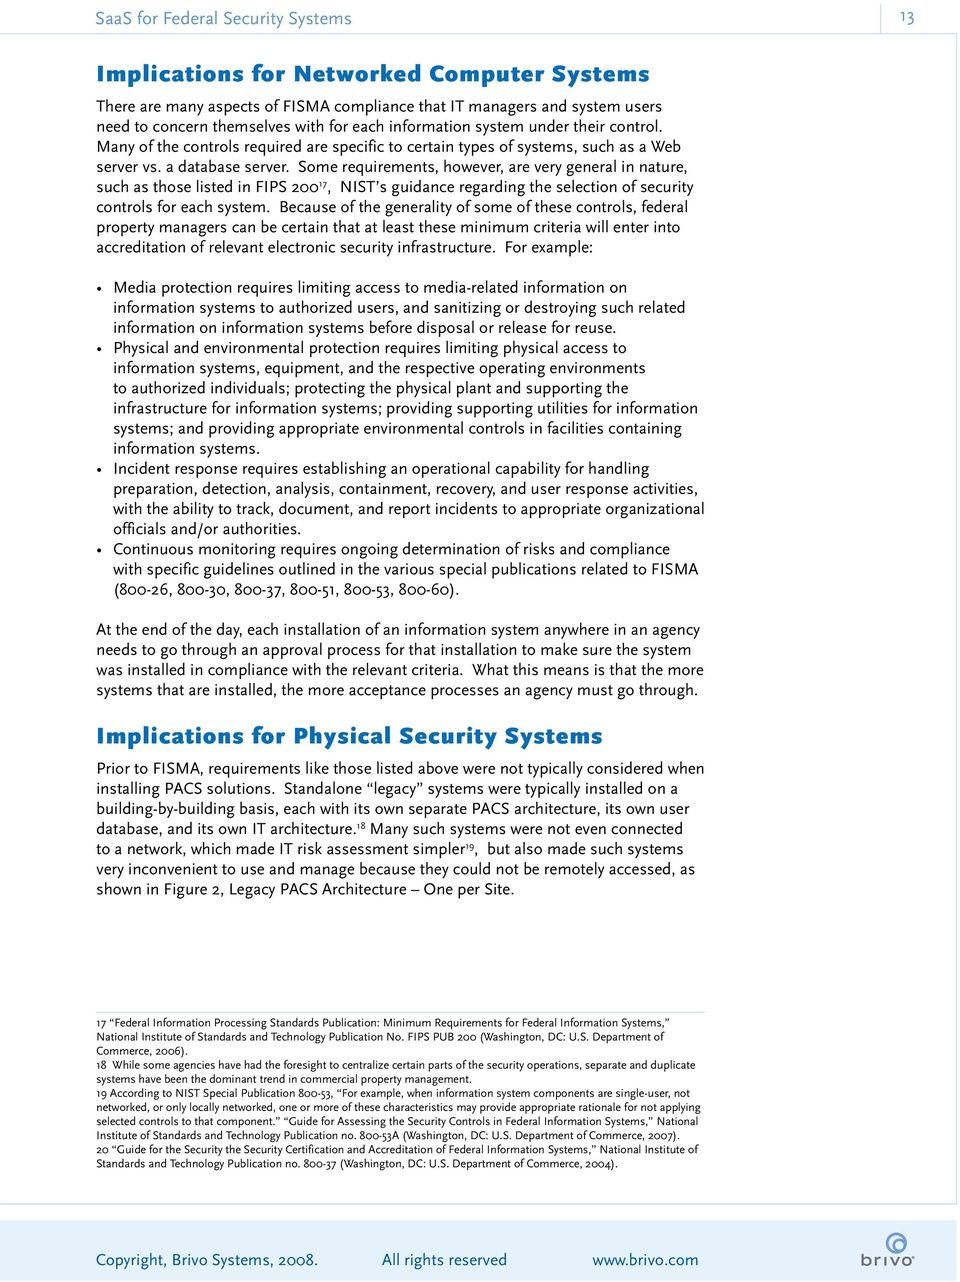 Some requirements, however, are very general in nature, such as those listed in FIPS 200 17, NIST s guidance regarding the selection of security controls for each system.